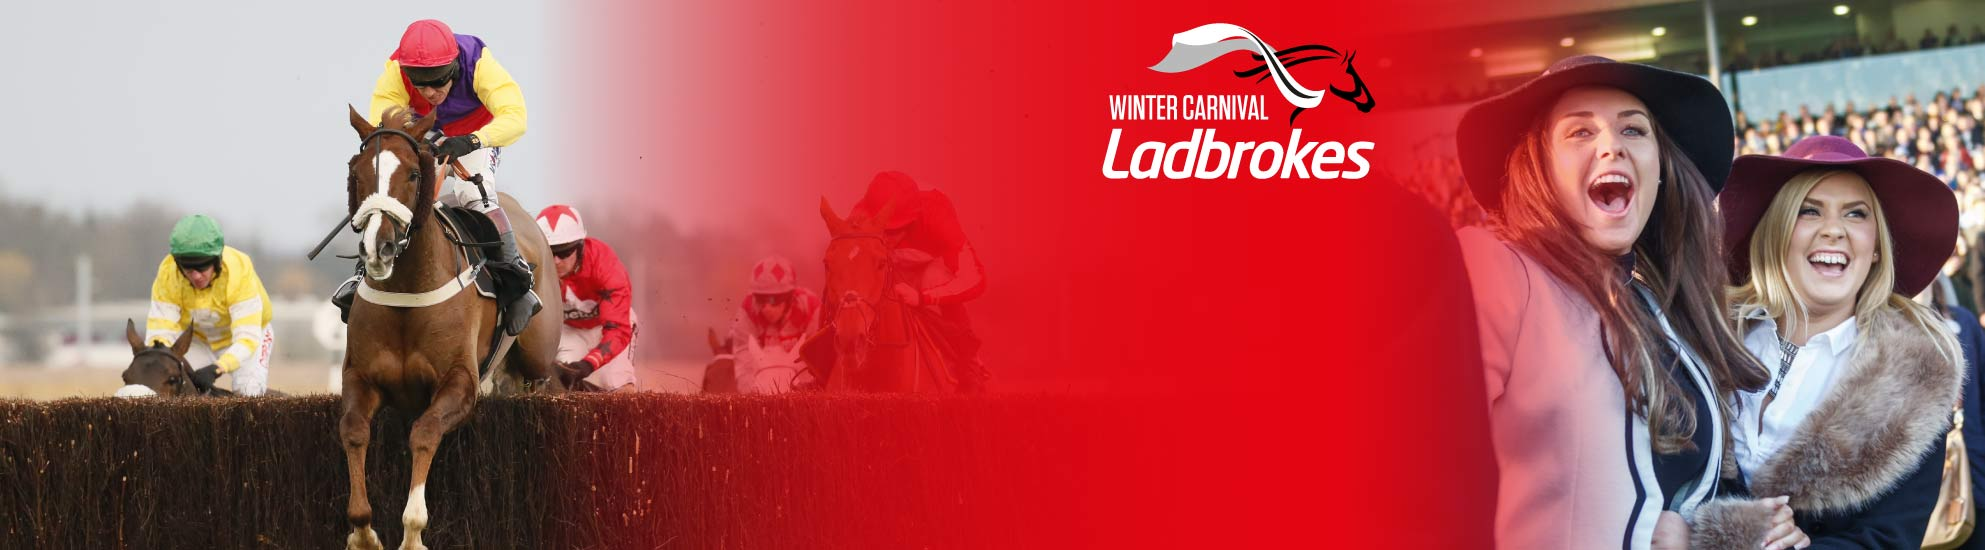 Ladbrokes-Winter-Carnival